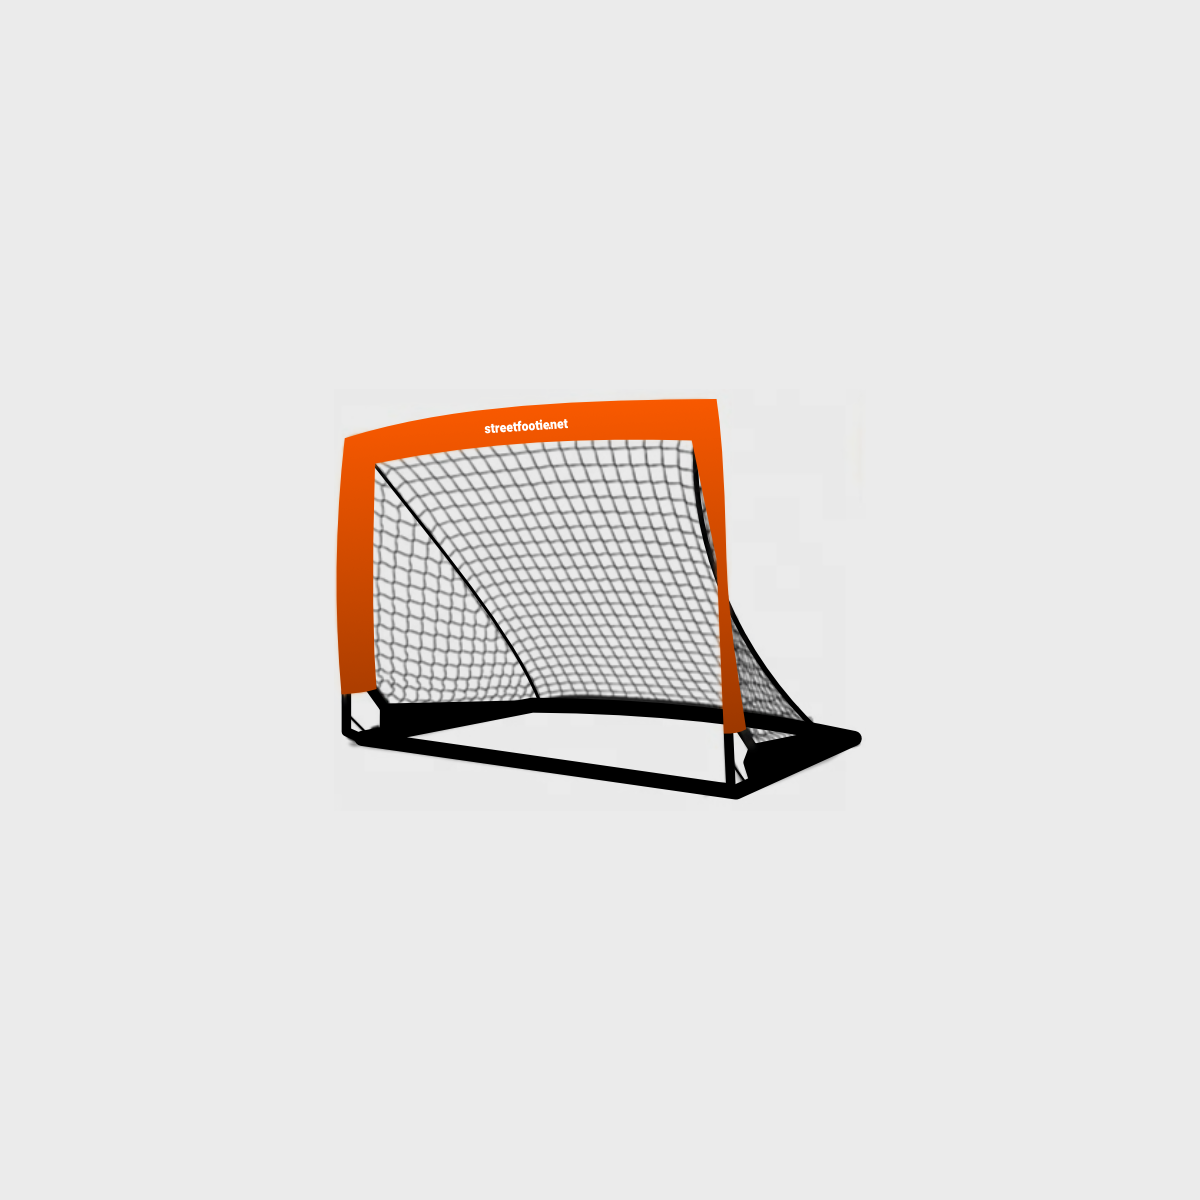 An image to showcase the Hi-Vis Street Soccer Popup Goal. Links to the product page.